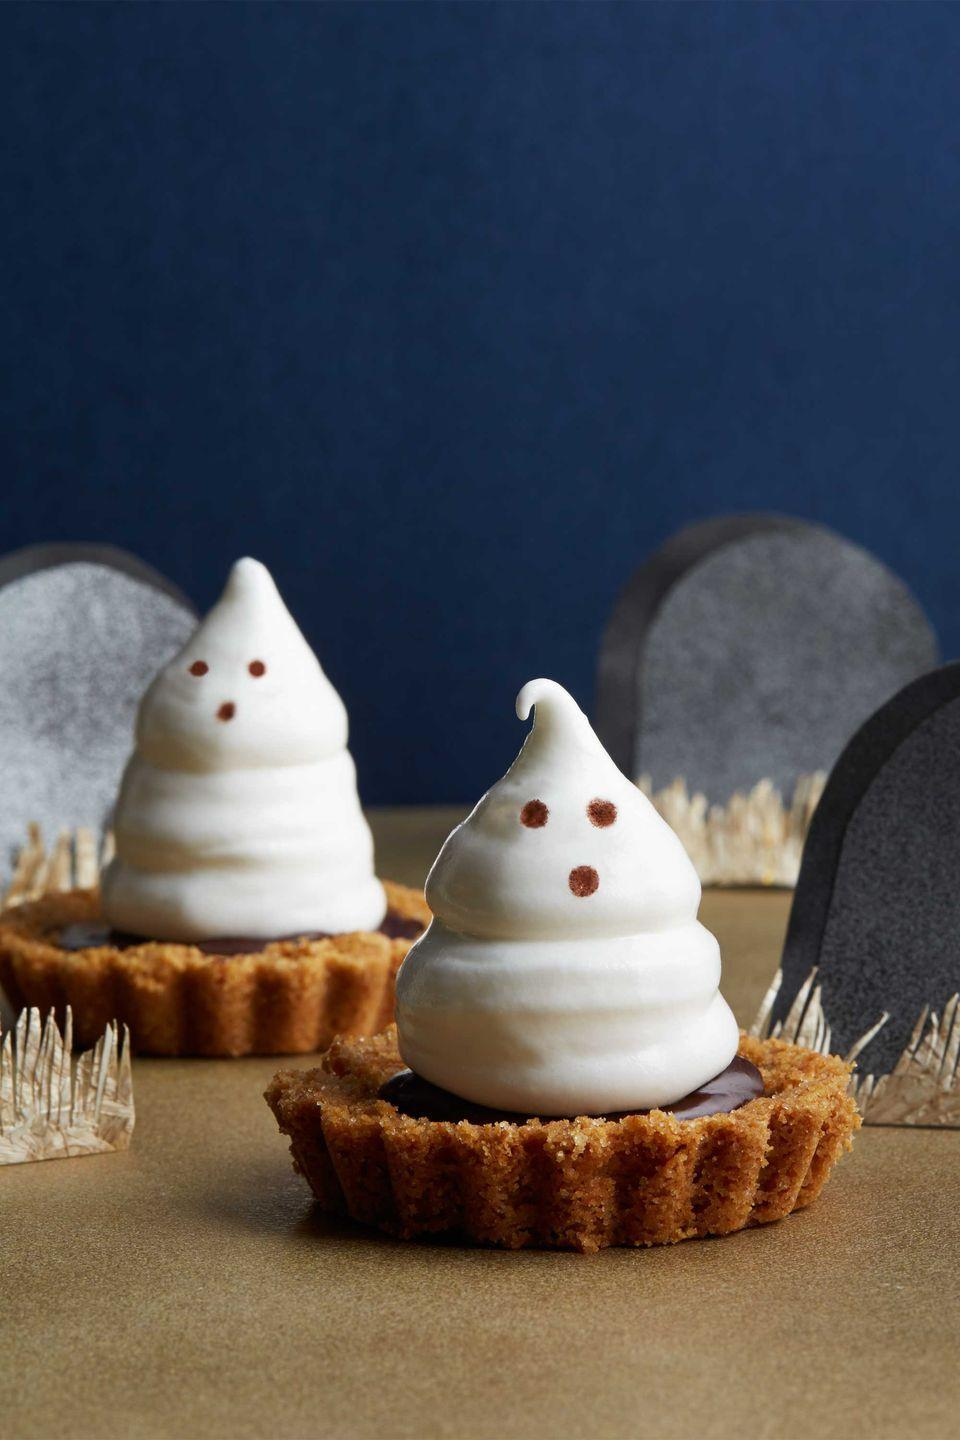 """<p>Boo! Knock guests' socks off with meringue-topped chocolate ganache tartlet—the perfect sweet and spooky Halloween dessert.</p><p><strong><a href=""""https://www.countryliving.com/food-drinks/recipes/a5910/meringue-ghost-tartlets-recipe-clx1014/"""" rel=""""nofollow noopener"""" target=""""_blank"""" data-ylk=""""slk:Get the recipe"""" class=""""link rapid-noclick-resp"""">Get the recipe</a></strong>.</p>"""